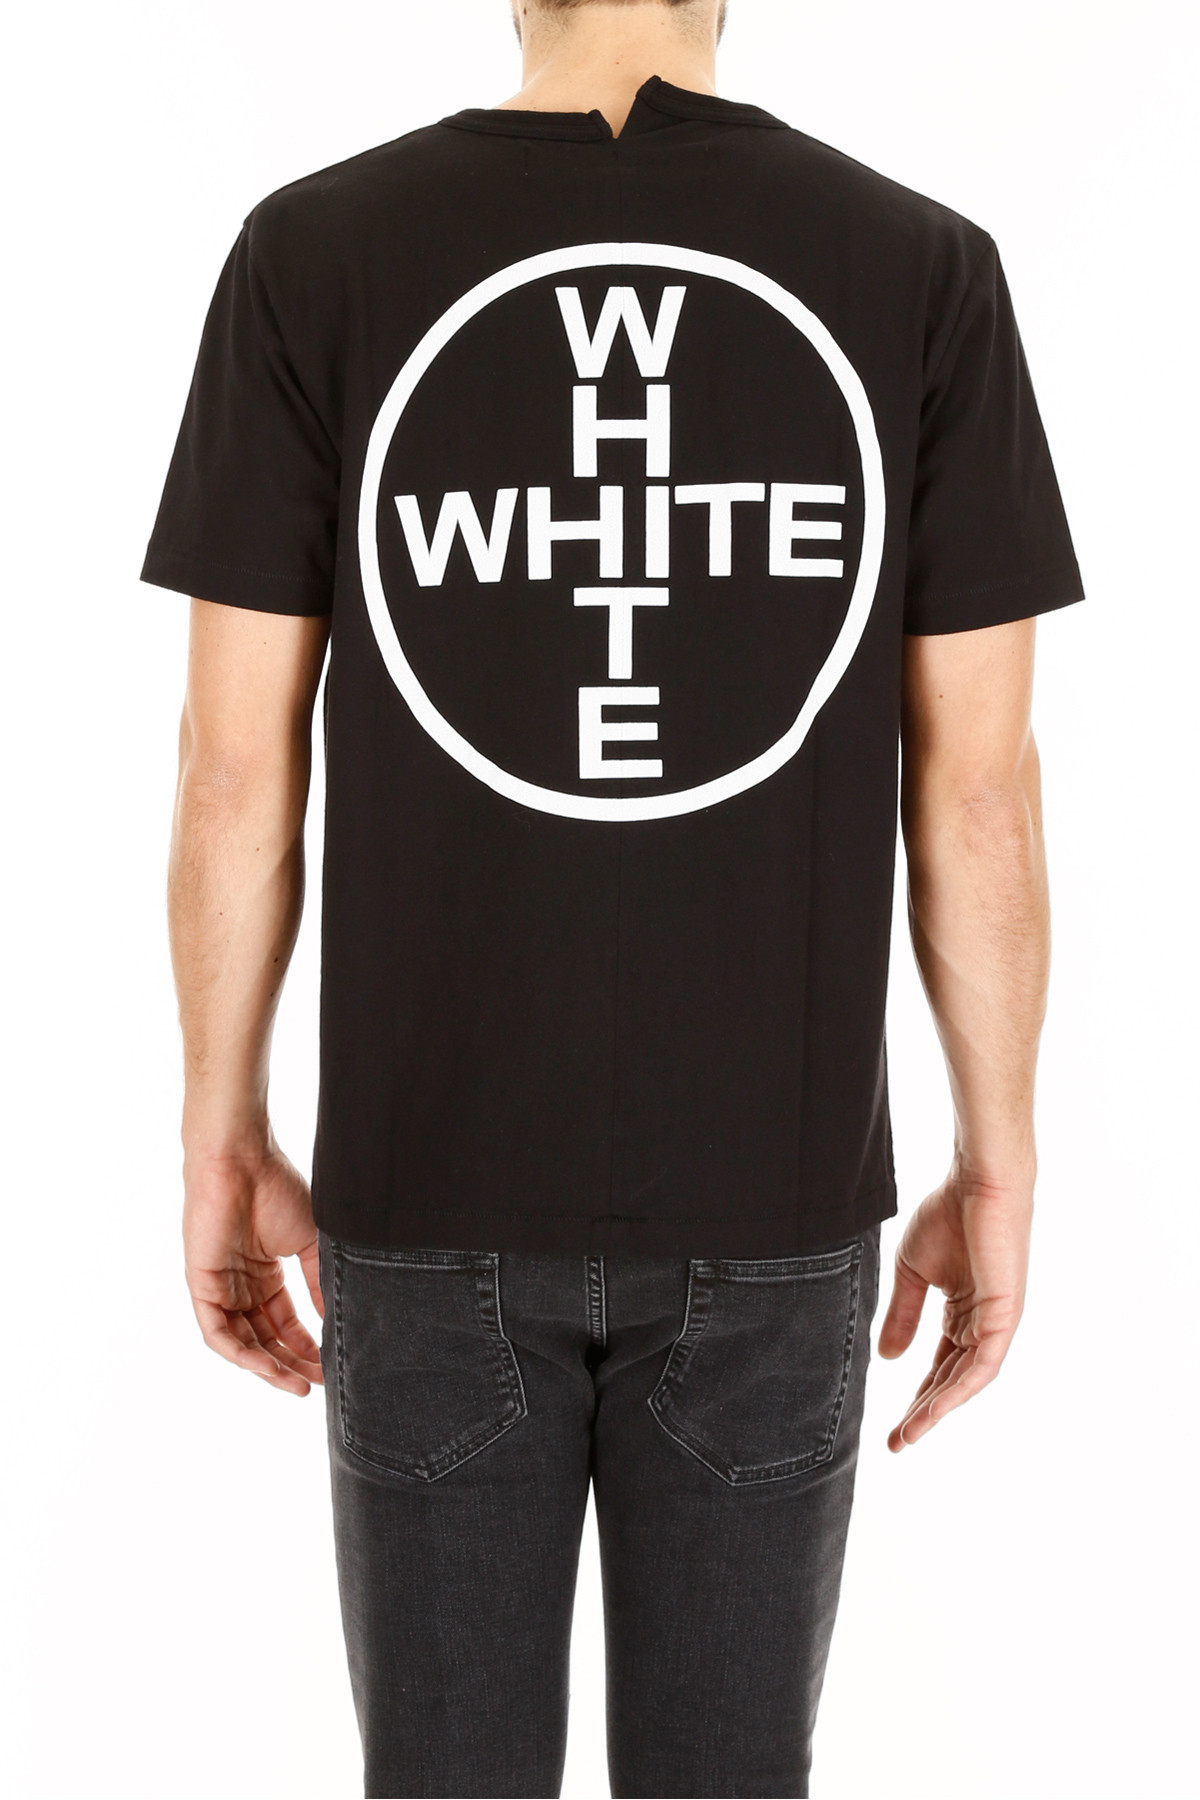 OFF WHITE Cotton Jersey Printed T-Shirt